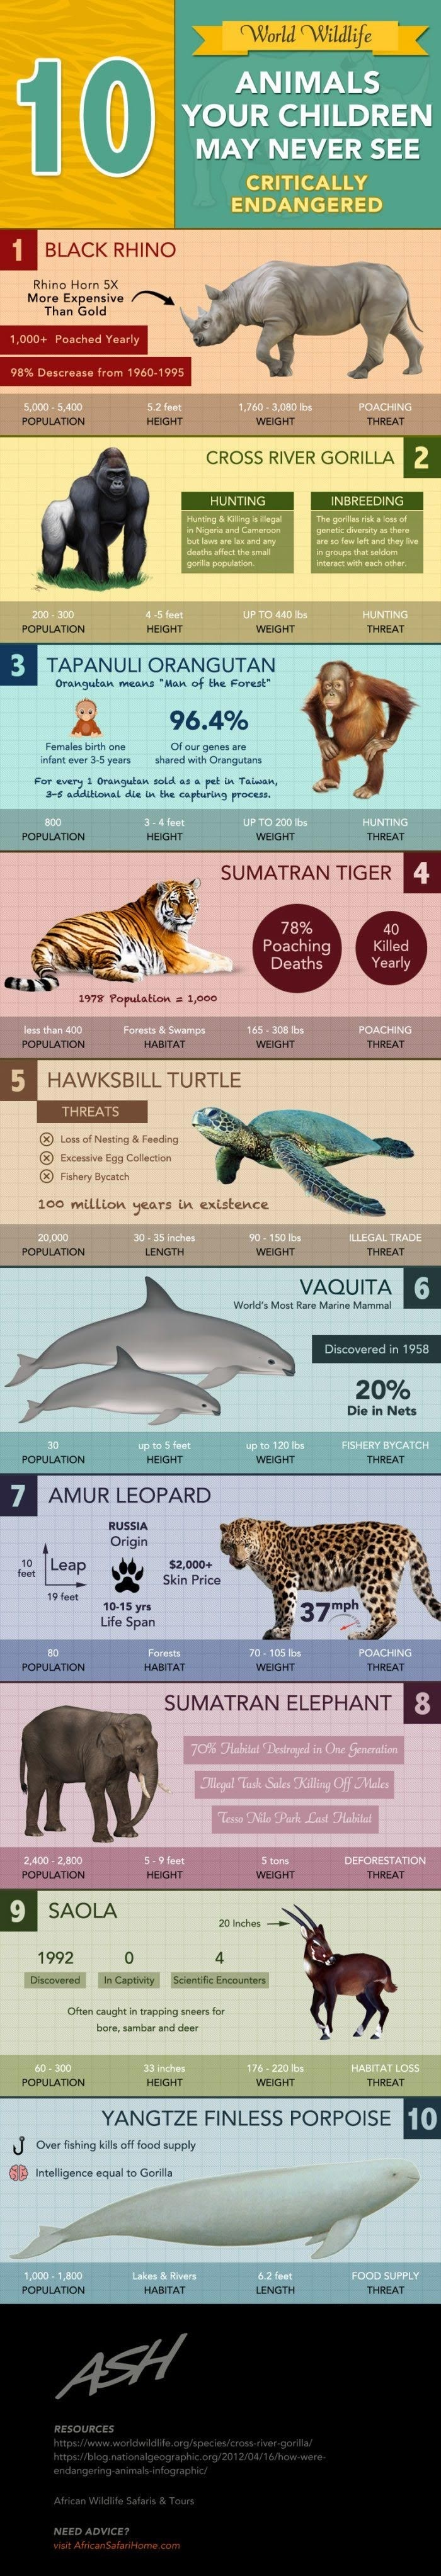 10 Animals Your Children May Never See #infographic